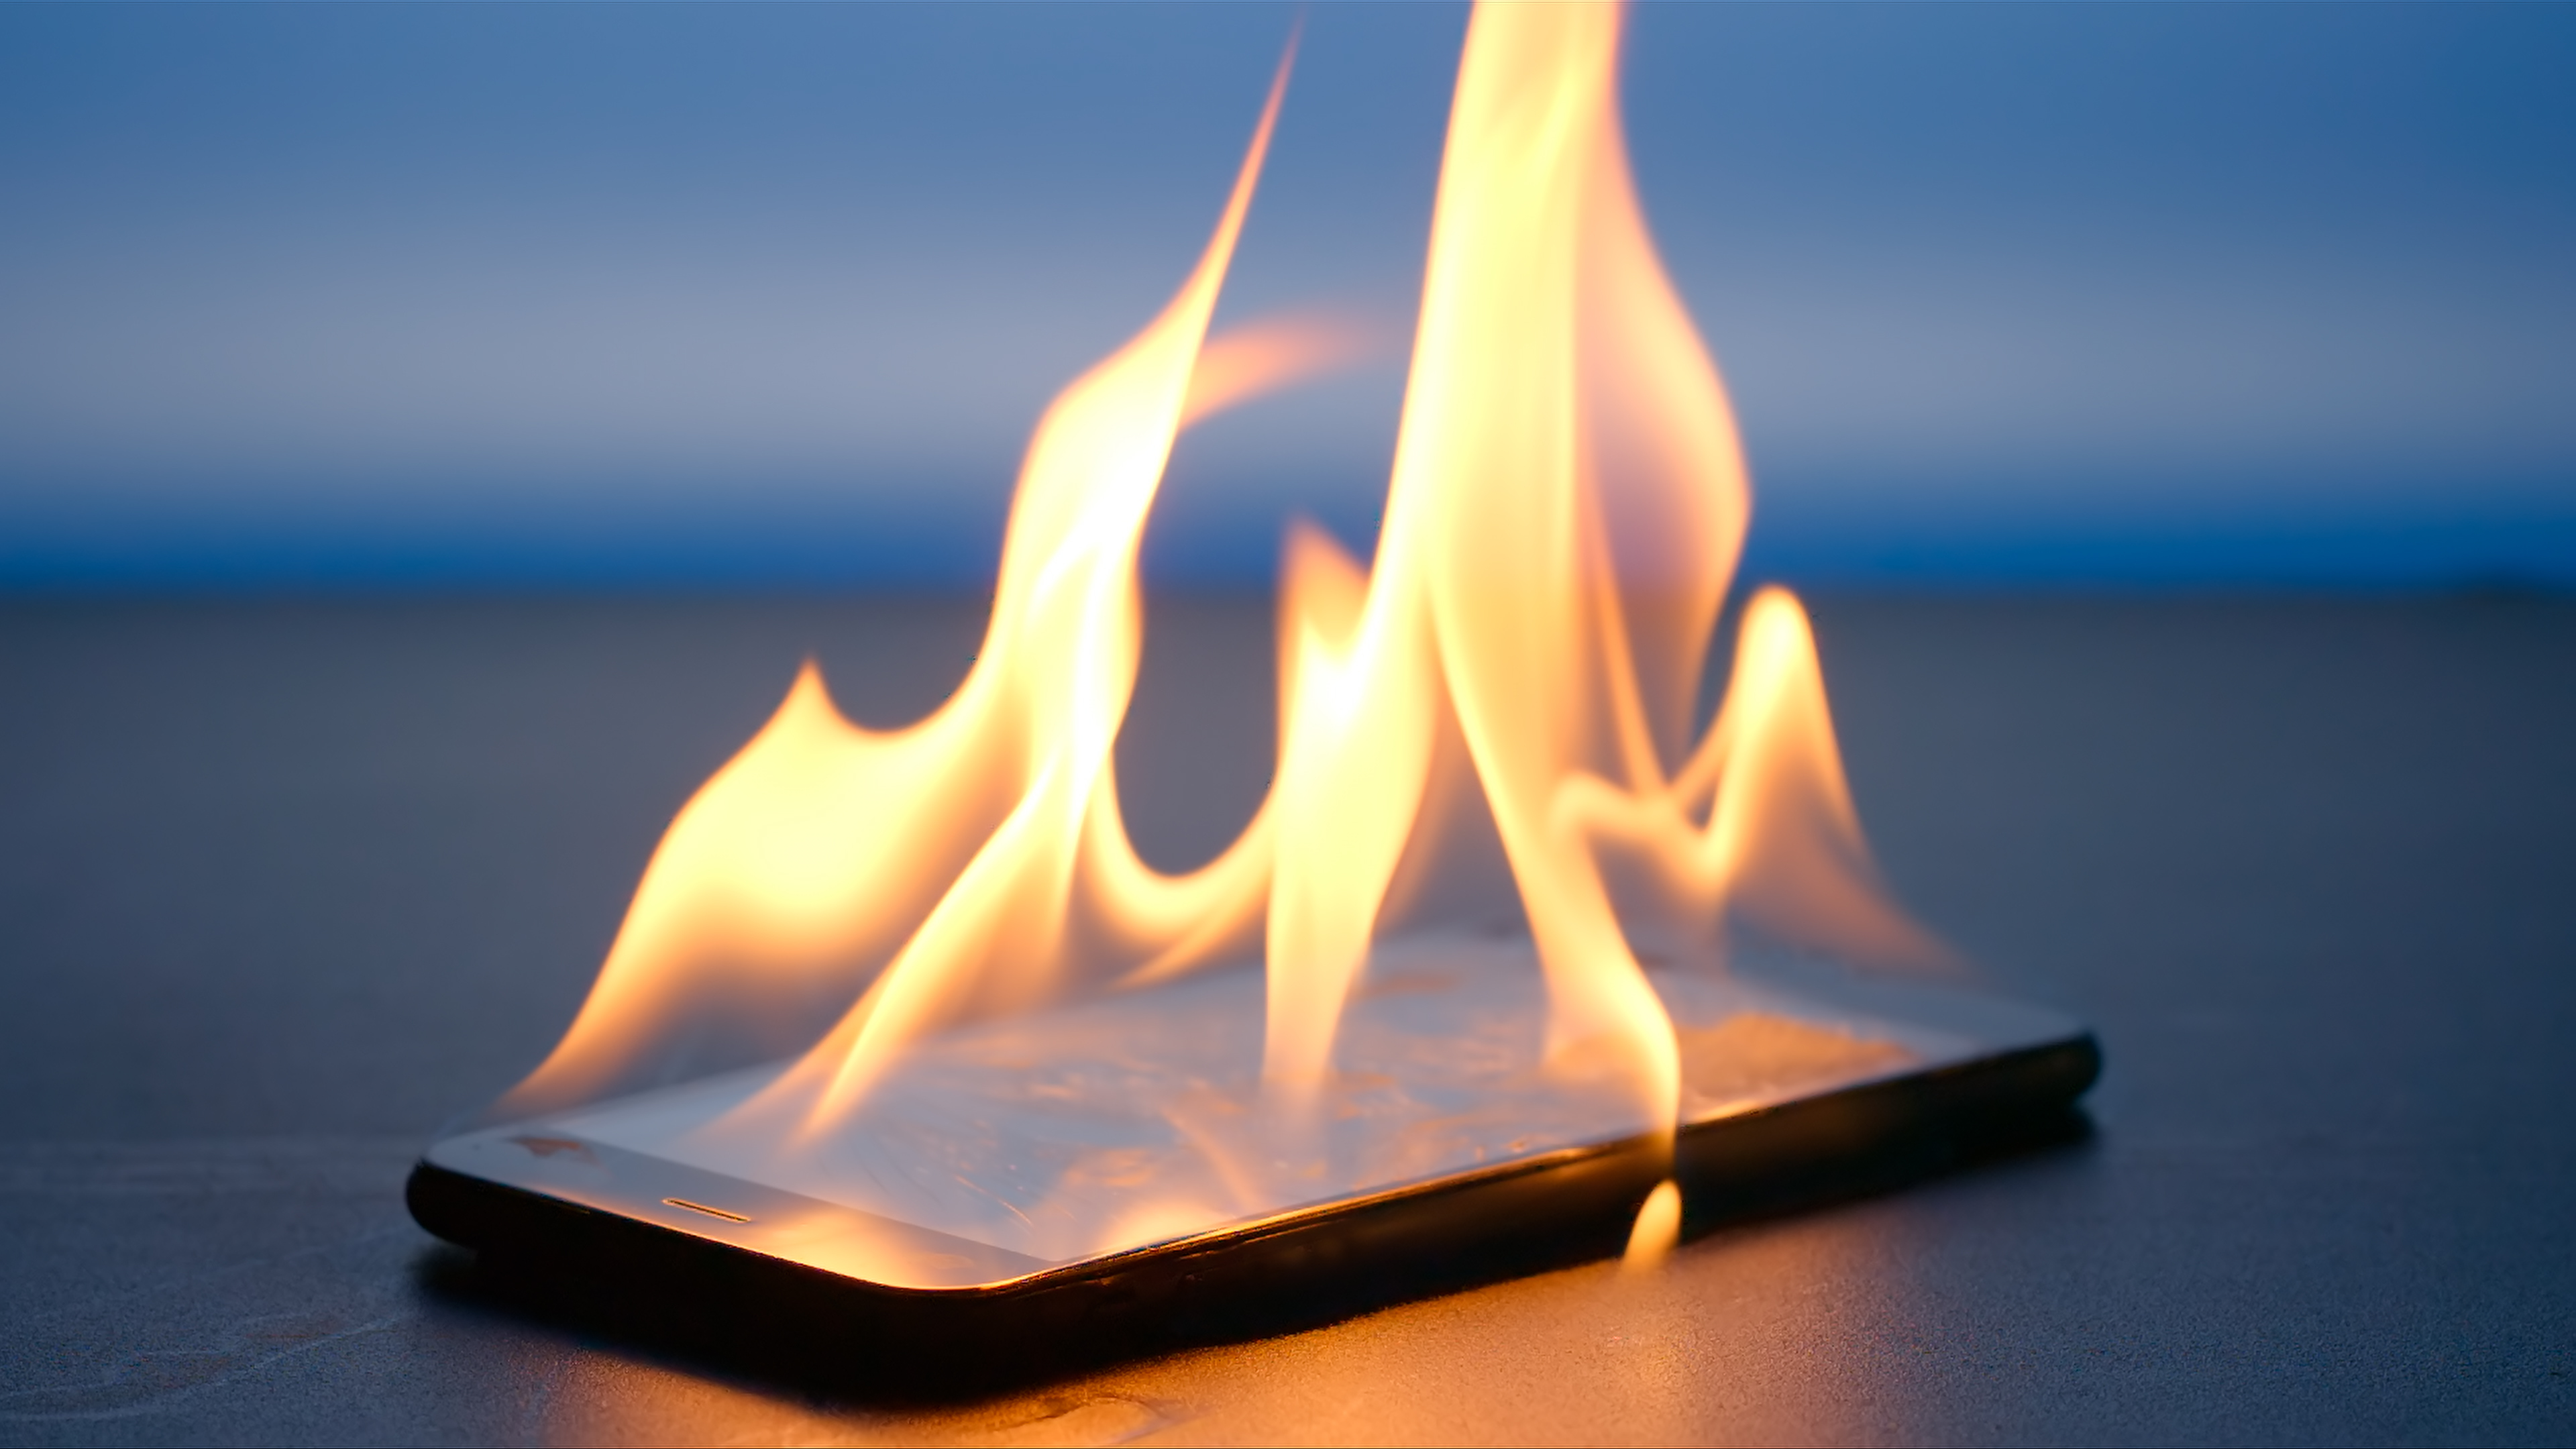 Why Does My Cell Phone Get Hot? | LoveToKnow